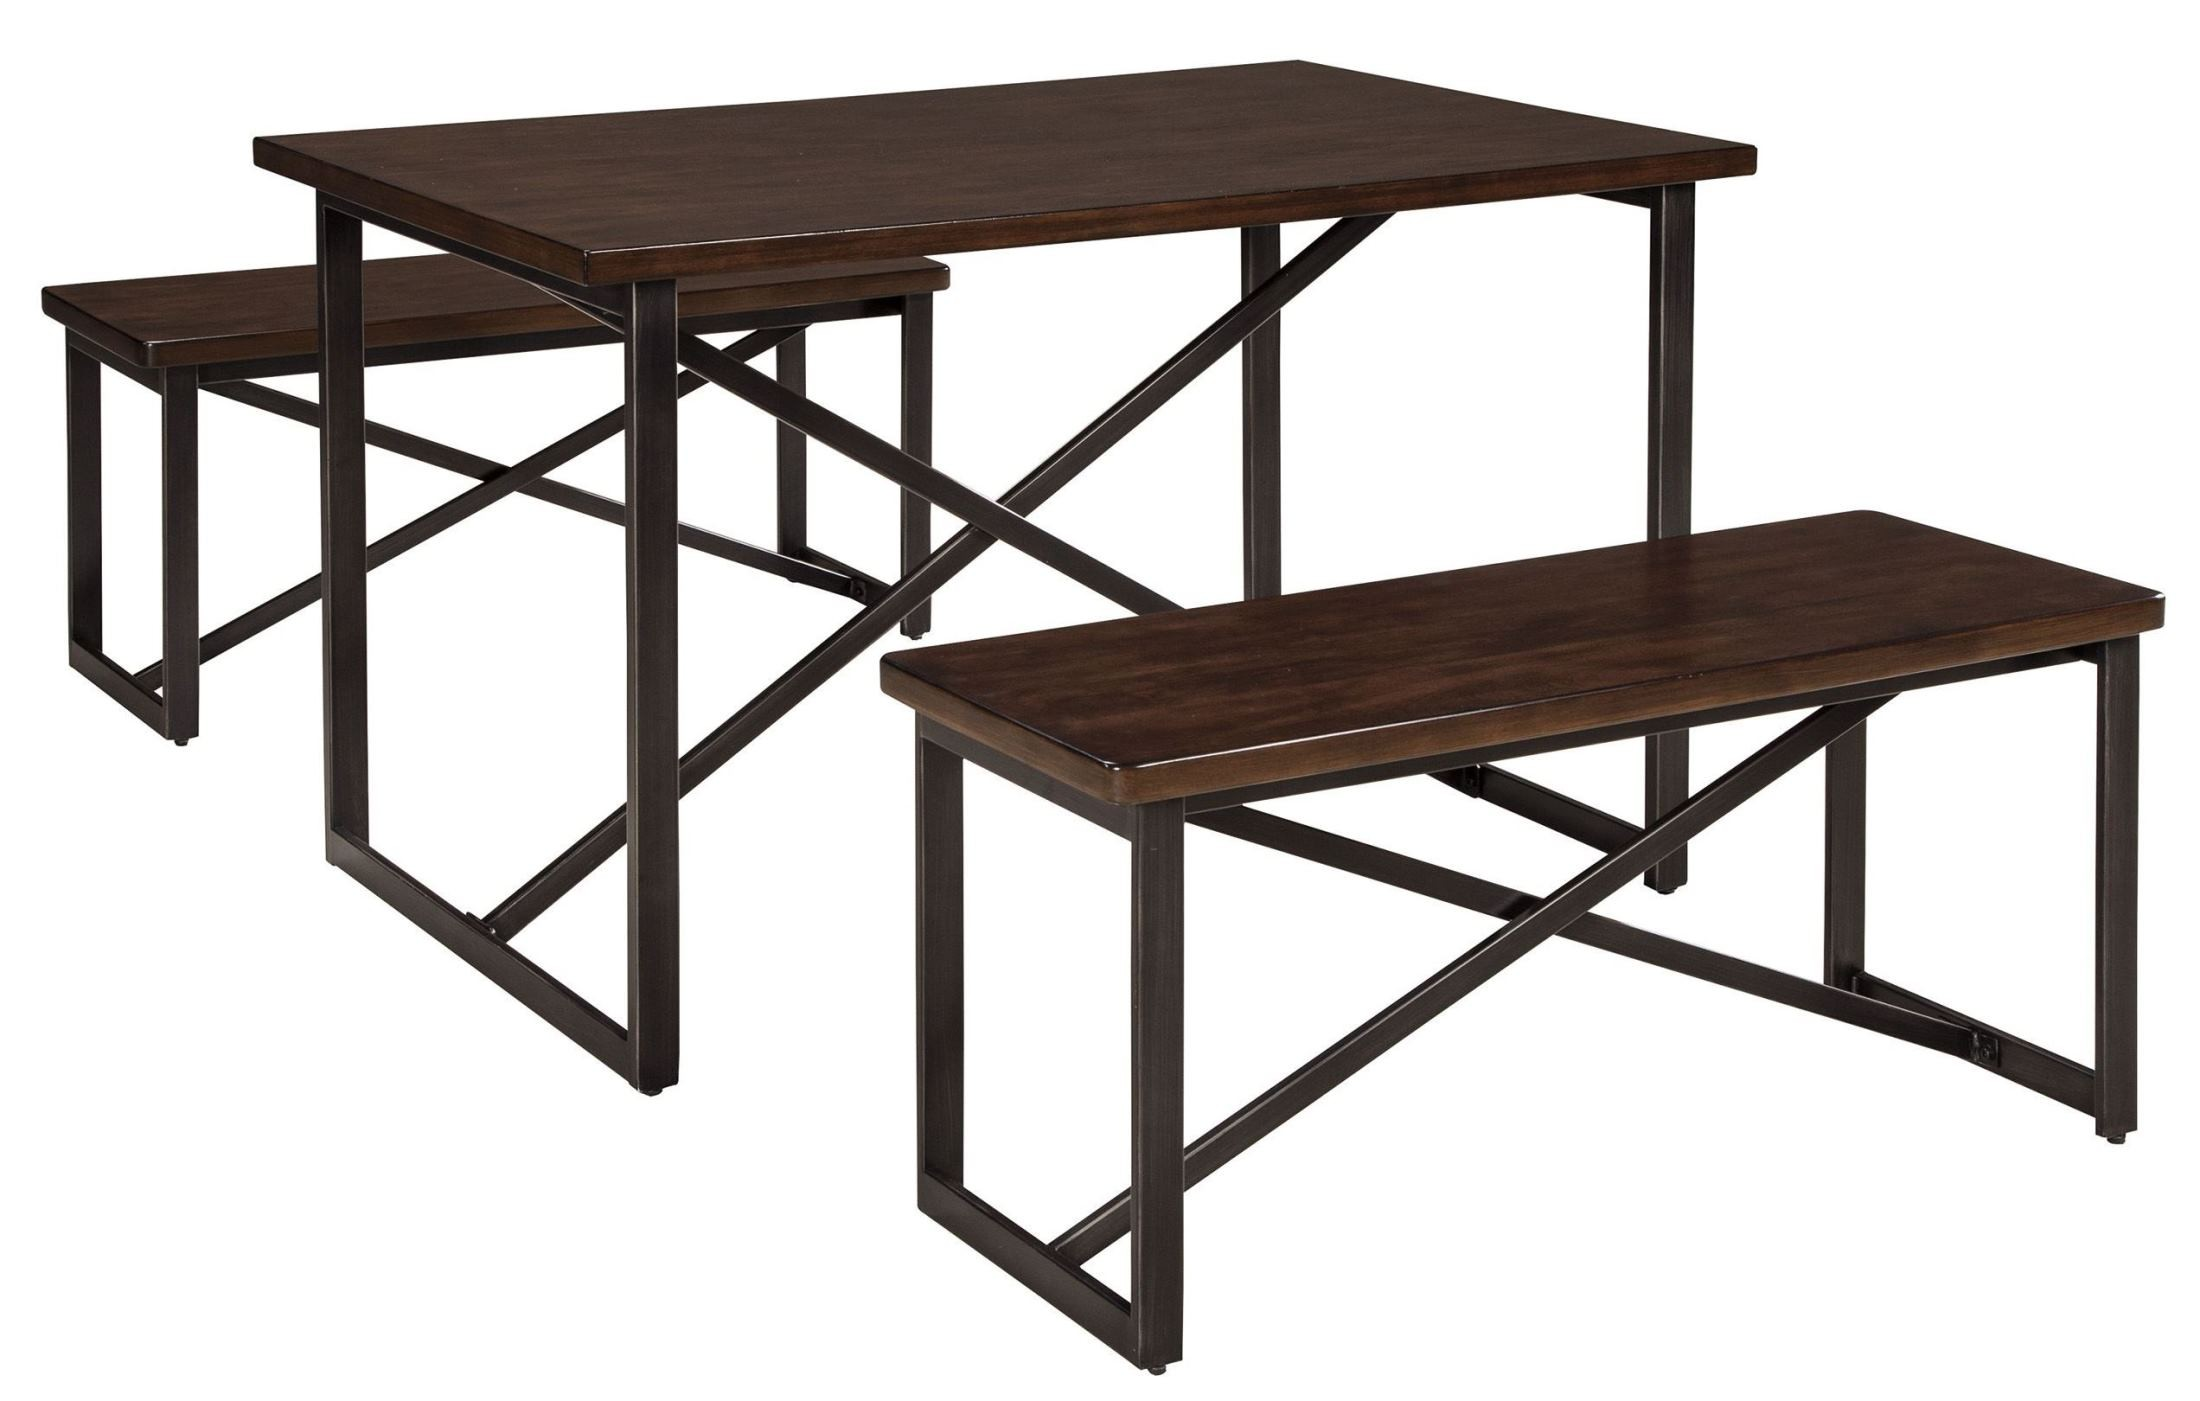 Joring 3 Piece Rectangular Dining Room Table Set From